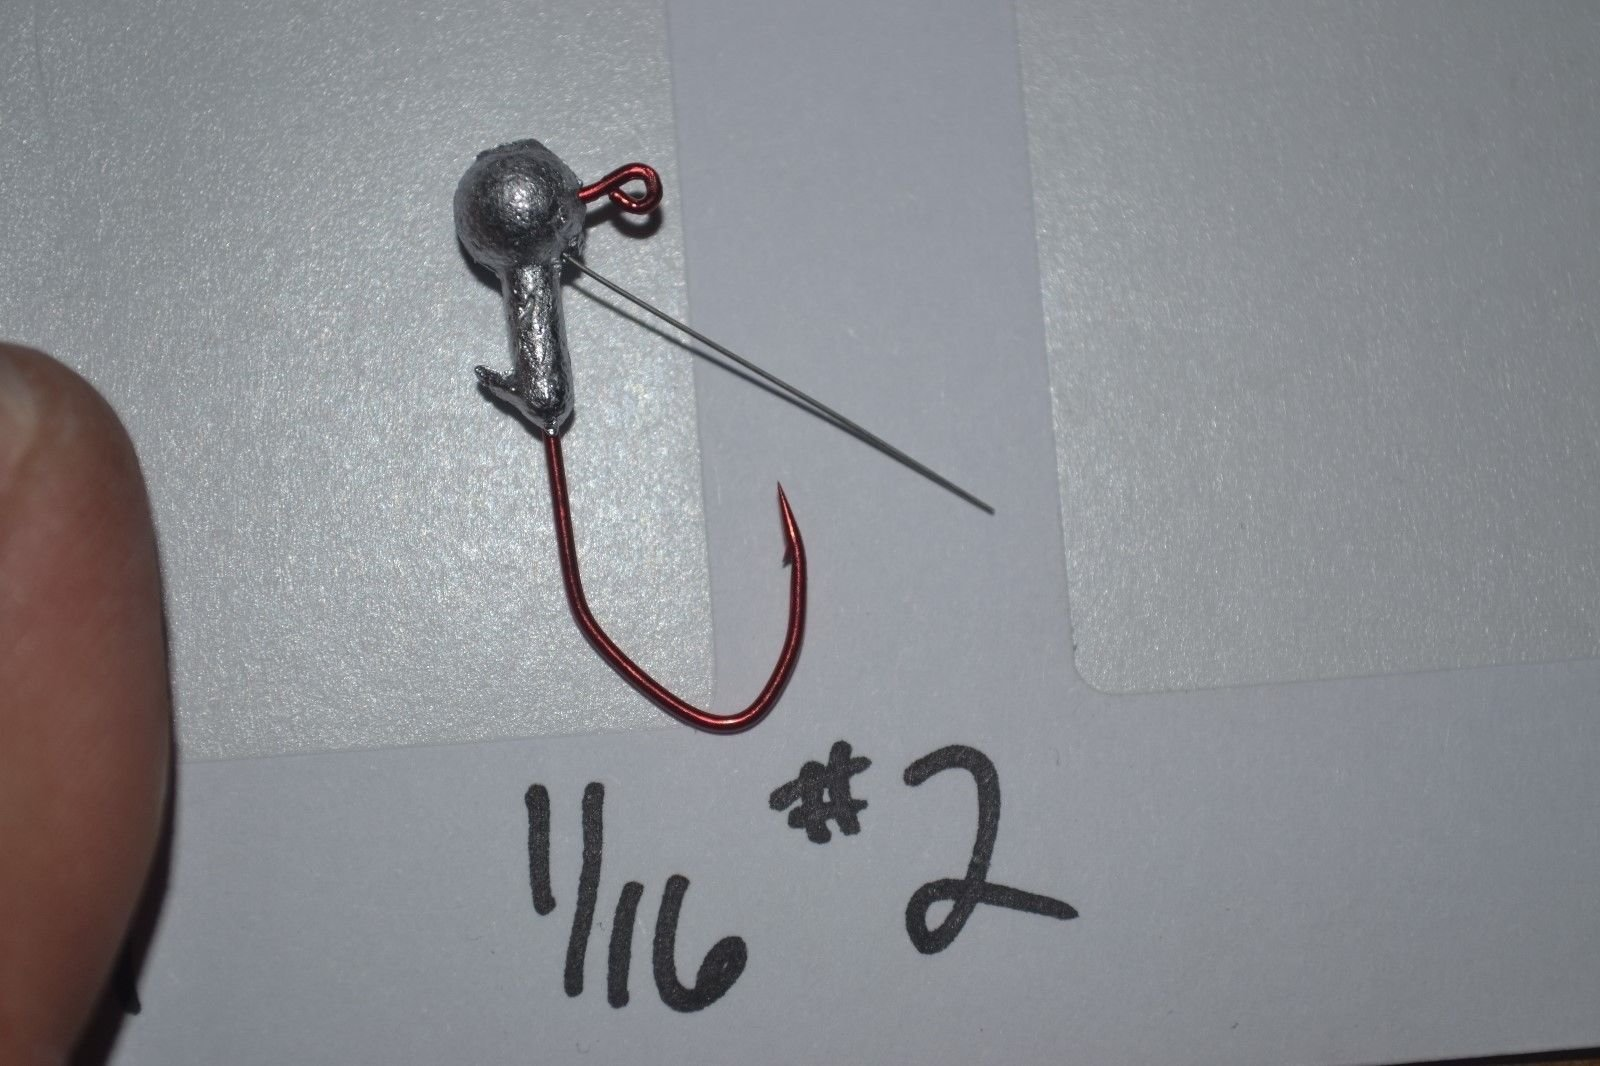 Experience Real Fishing 1/16 Round Head WEEDLESS Crappie JIG Head #2 Eagle Claw RED Sickle 25 Pack World Class Fishing